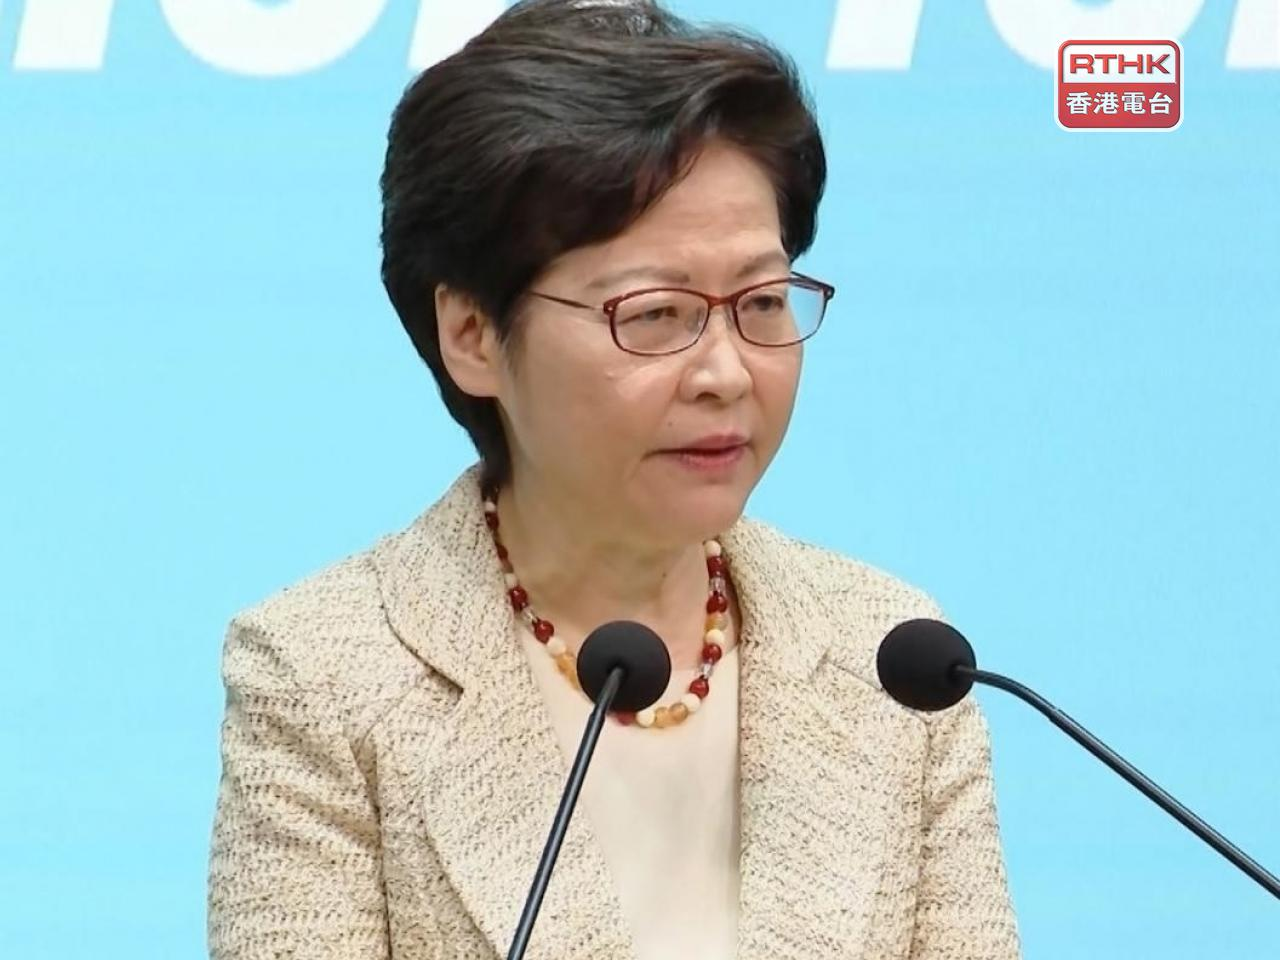 Health code app won't be compulsory, says Carrie Lam